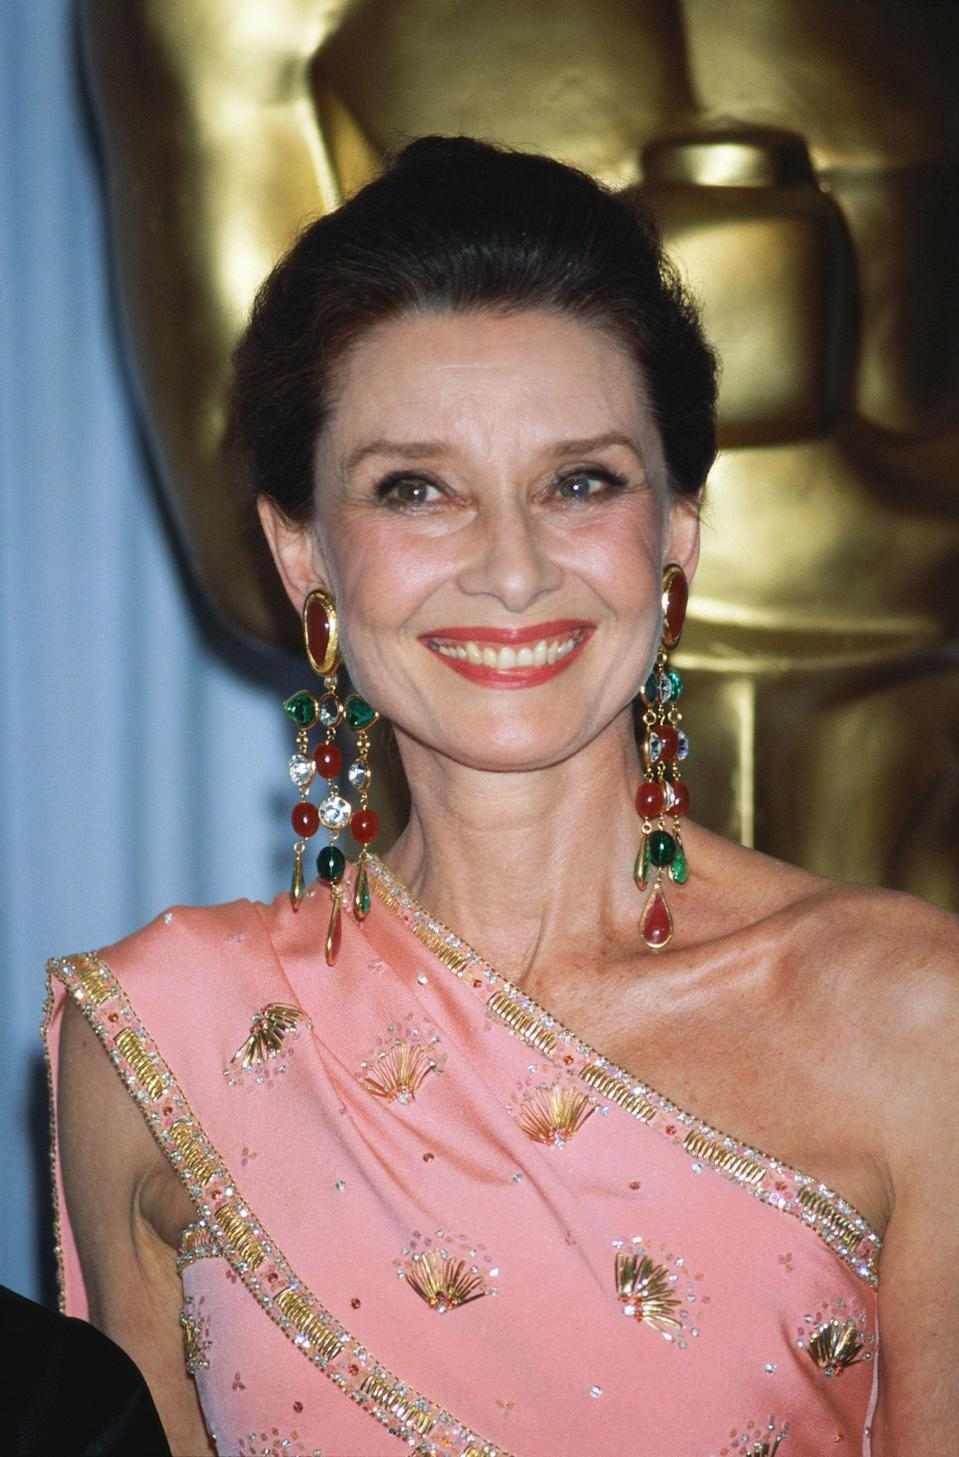 On hand to present the awards for achievement in costume design, Audrey Hepburn dazzled into a custom pink gown by Hubert de Givenchy. The bold color was complemented by a pair of chandelier earrings featuring a mix of precious stones set in gold.